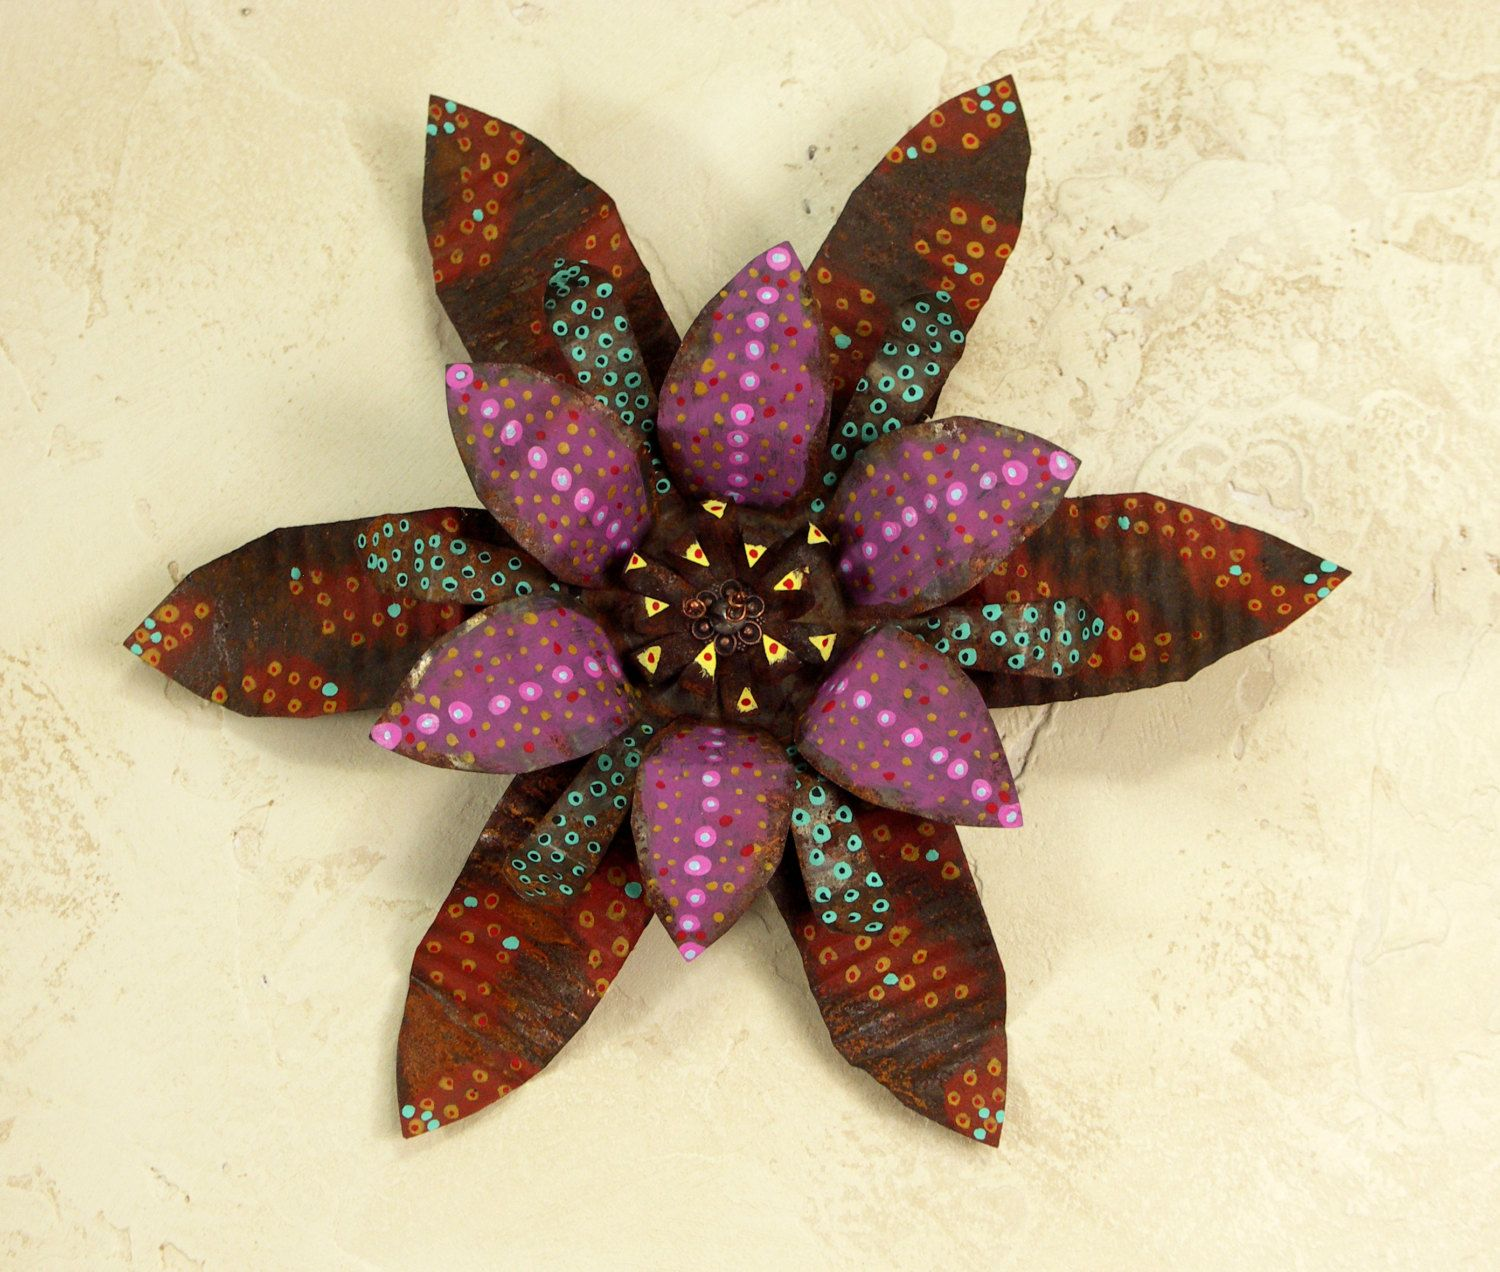 Metal Flower Wall Hanging Wall Hanging Hand Painted Rusted Flower Recycled Art Metal